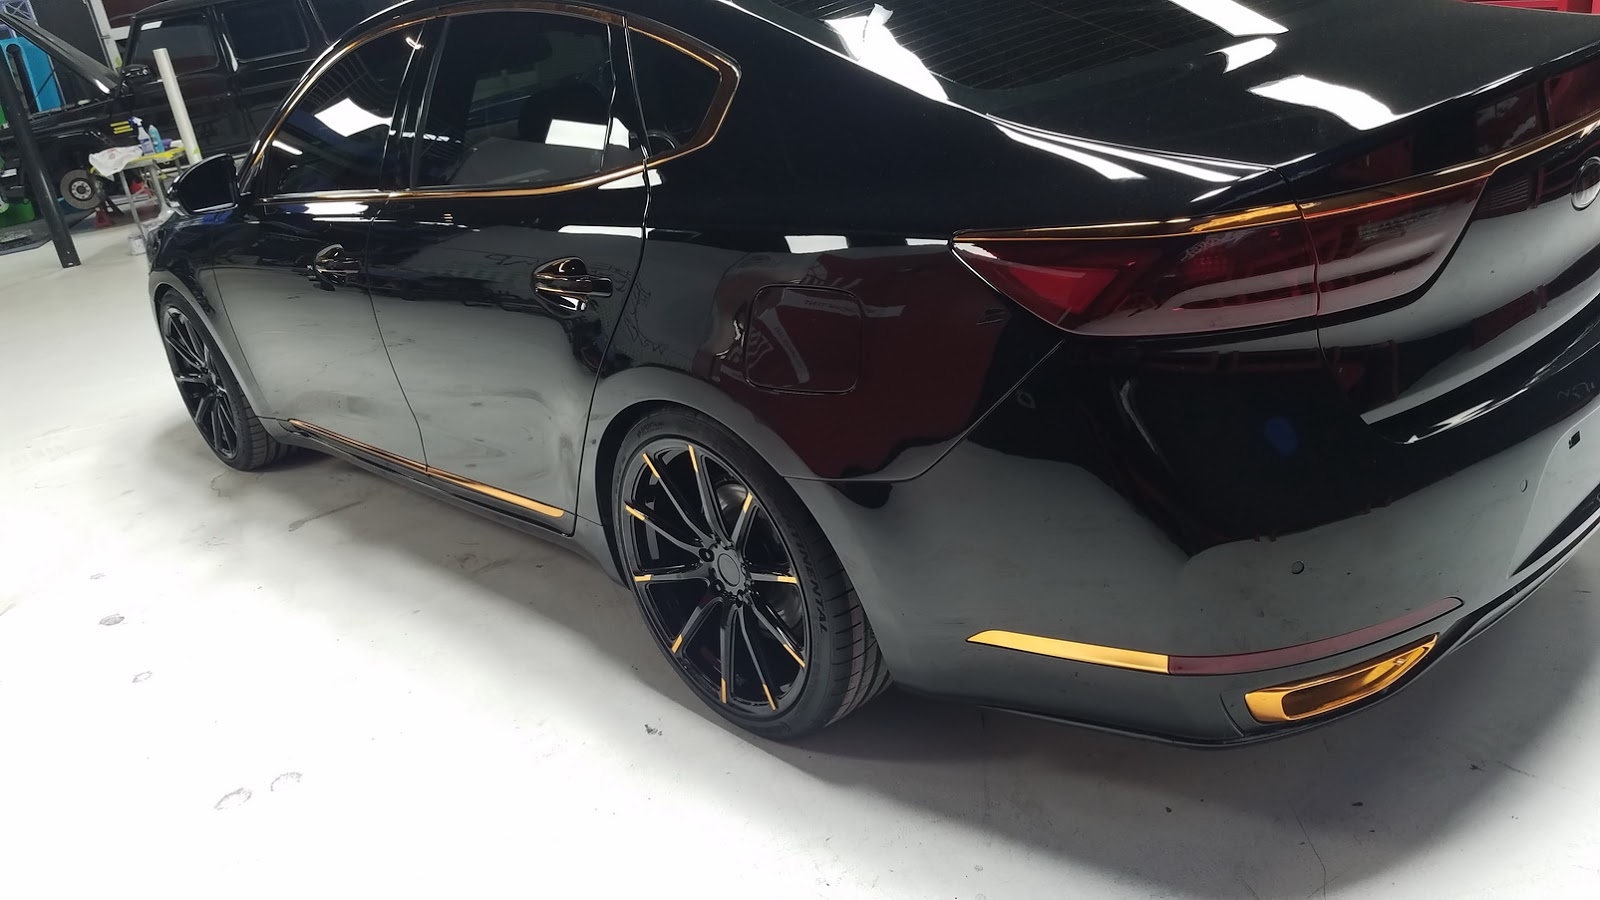 Kia Stinger Gt And Cadenza Tuning Projects Debut At Sema With Wcc S Help Autoevolution